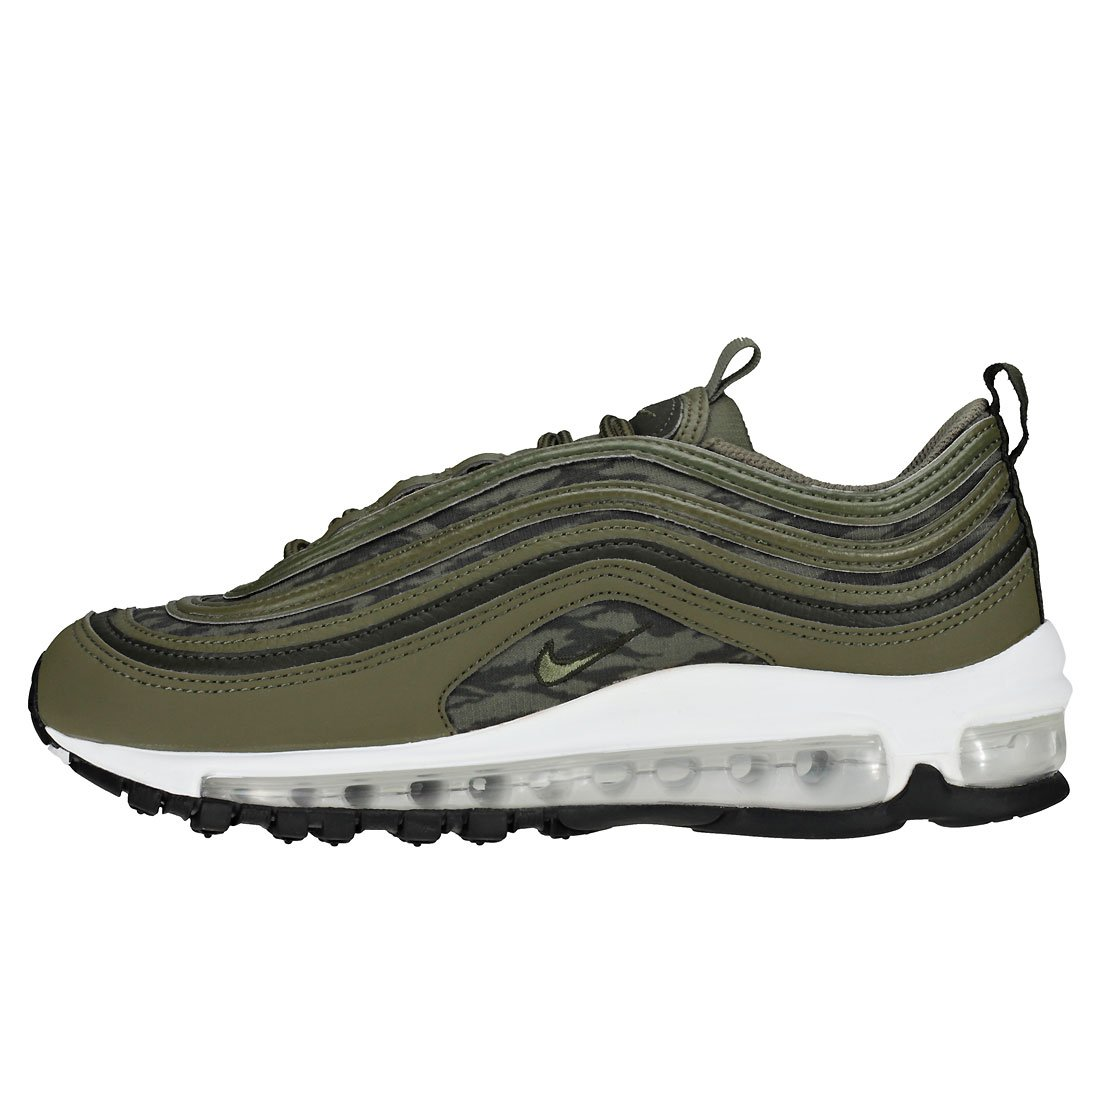 lowest price 6450b c74ab NIKE Air Max 97 Bg Kids Trainers Olive - 3 UK  Amazon.co.uk  Shoes   Bags